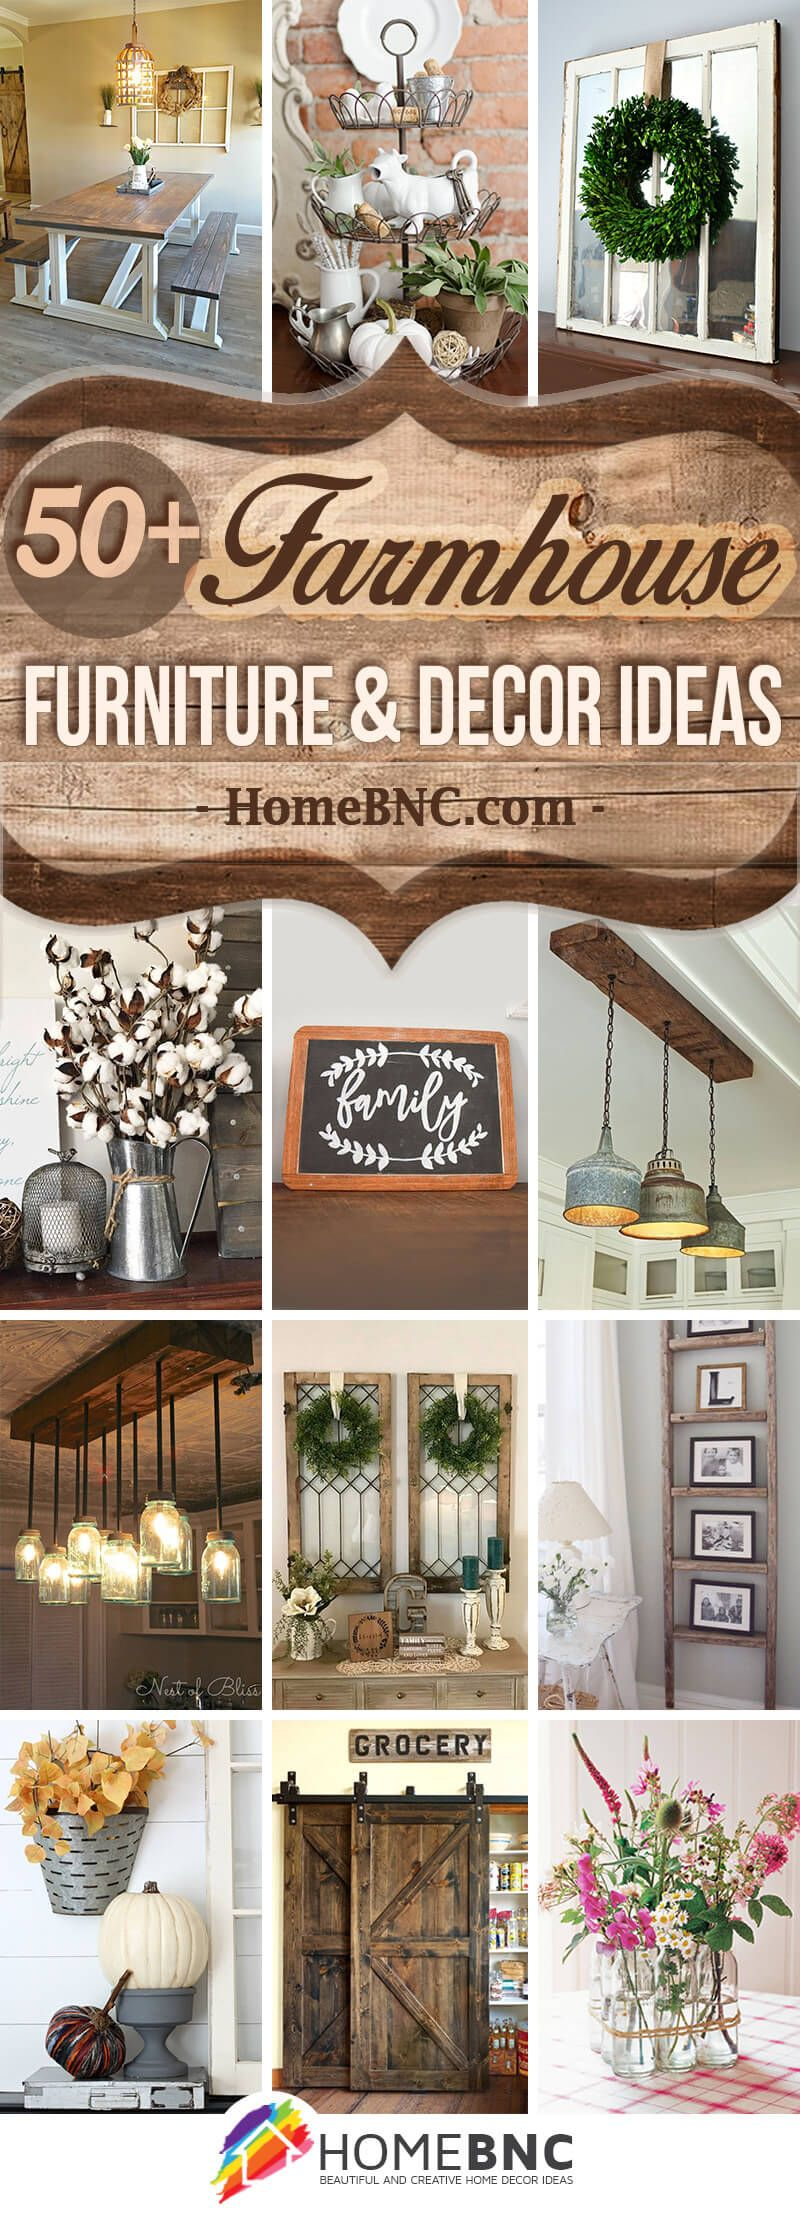 35 Best Rustic Home Decor Ideas And Designs For 2019: 50+ Best Farmhouse Furniture And Decor Ideas And Designs